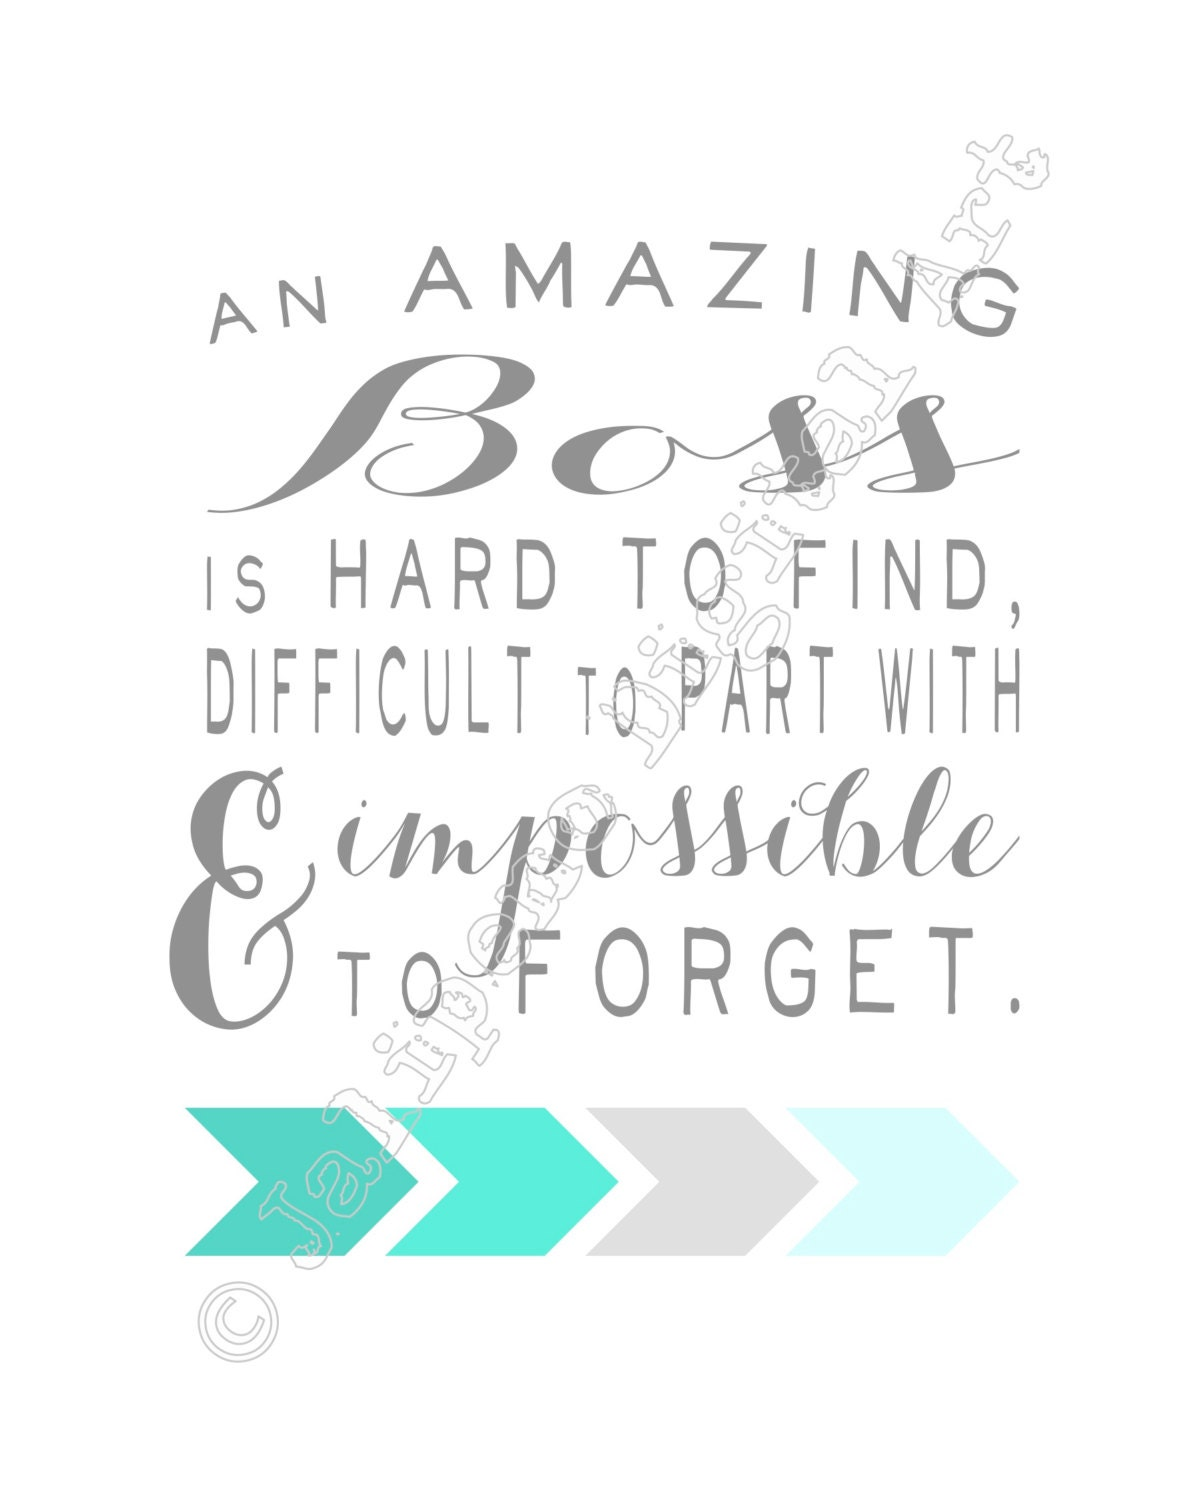 Farewell Thank You Quotes: An Amazing Boss Is Hard To Find Printable Quote Farewell